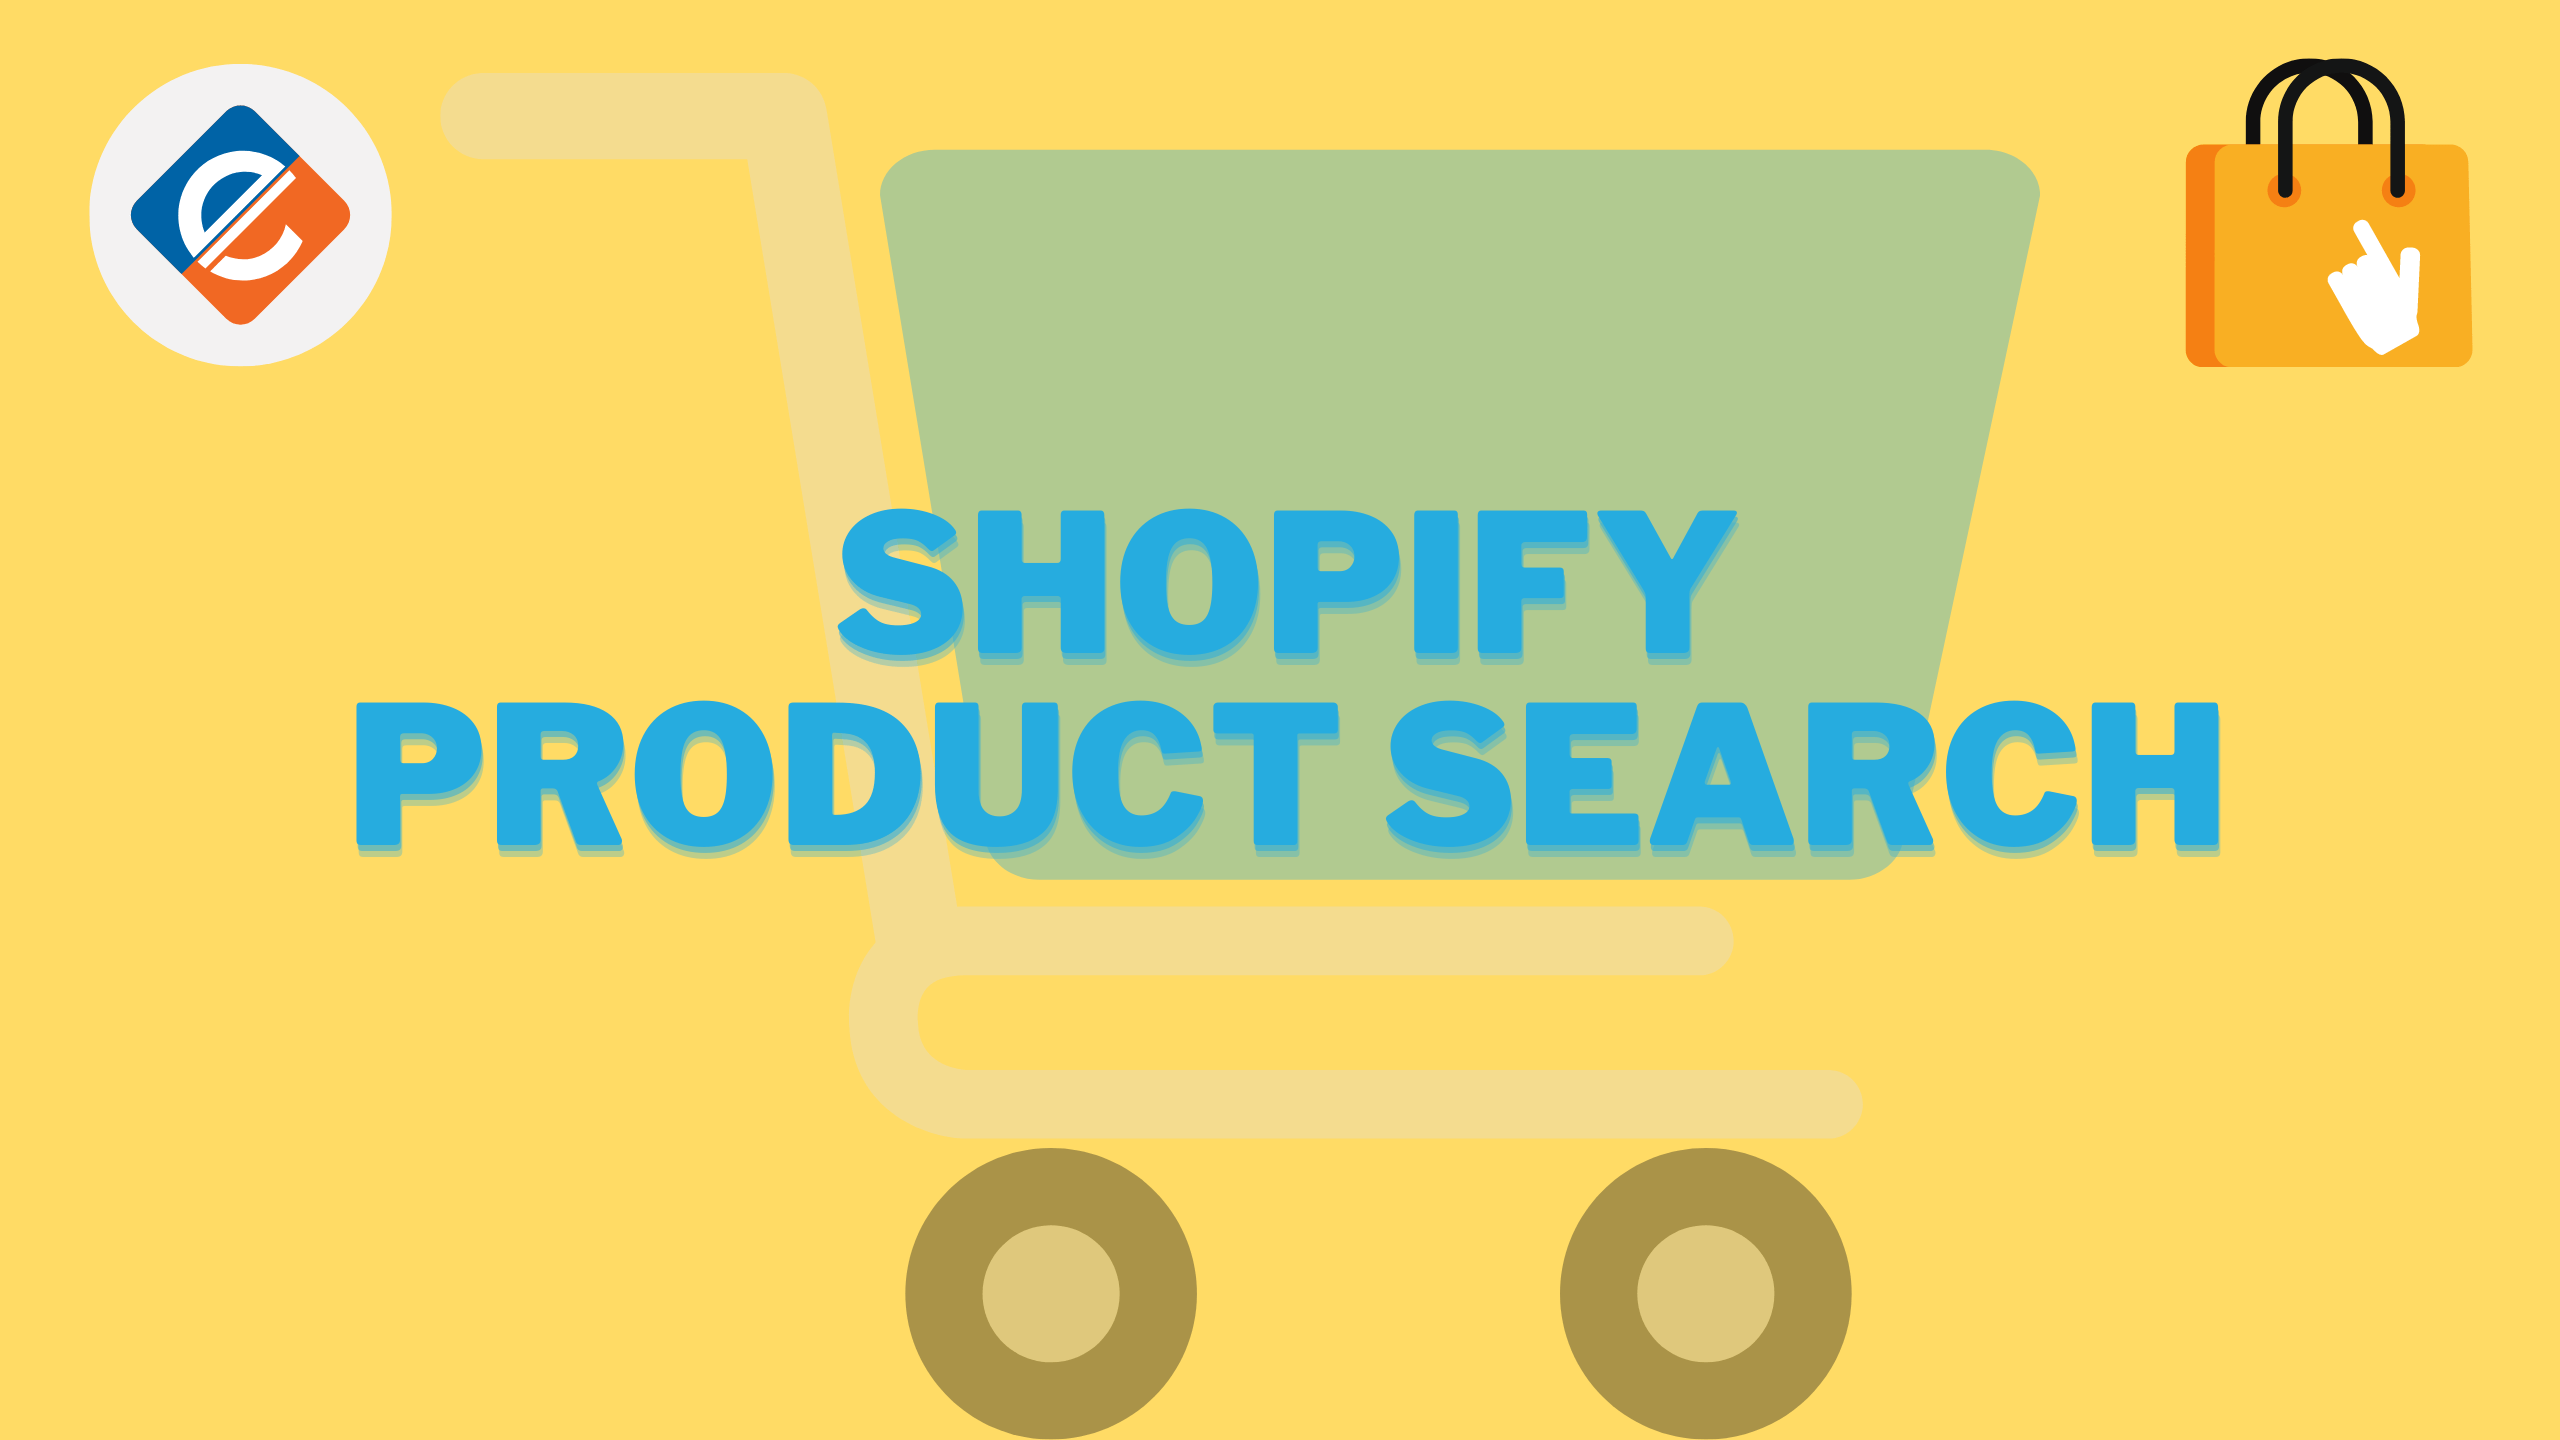 Shopify Product Search